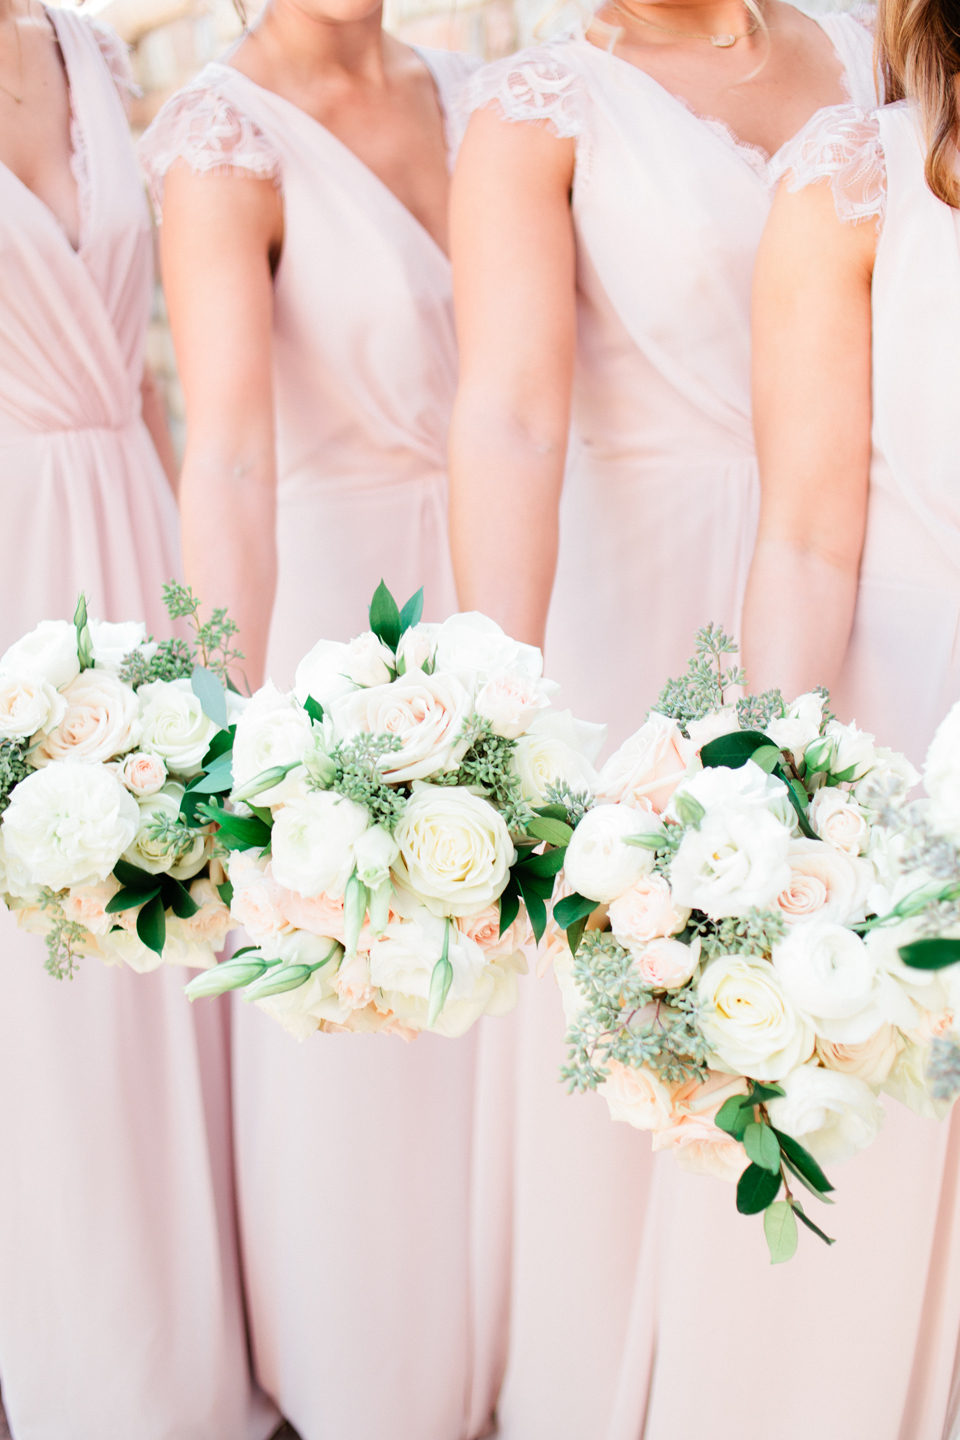 Image of bridesmaids holding their bouquets on the wedding day at TPC Sawgrass in Ponte Vedra, Florida